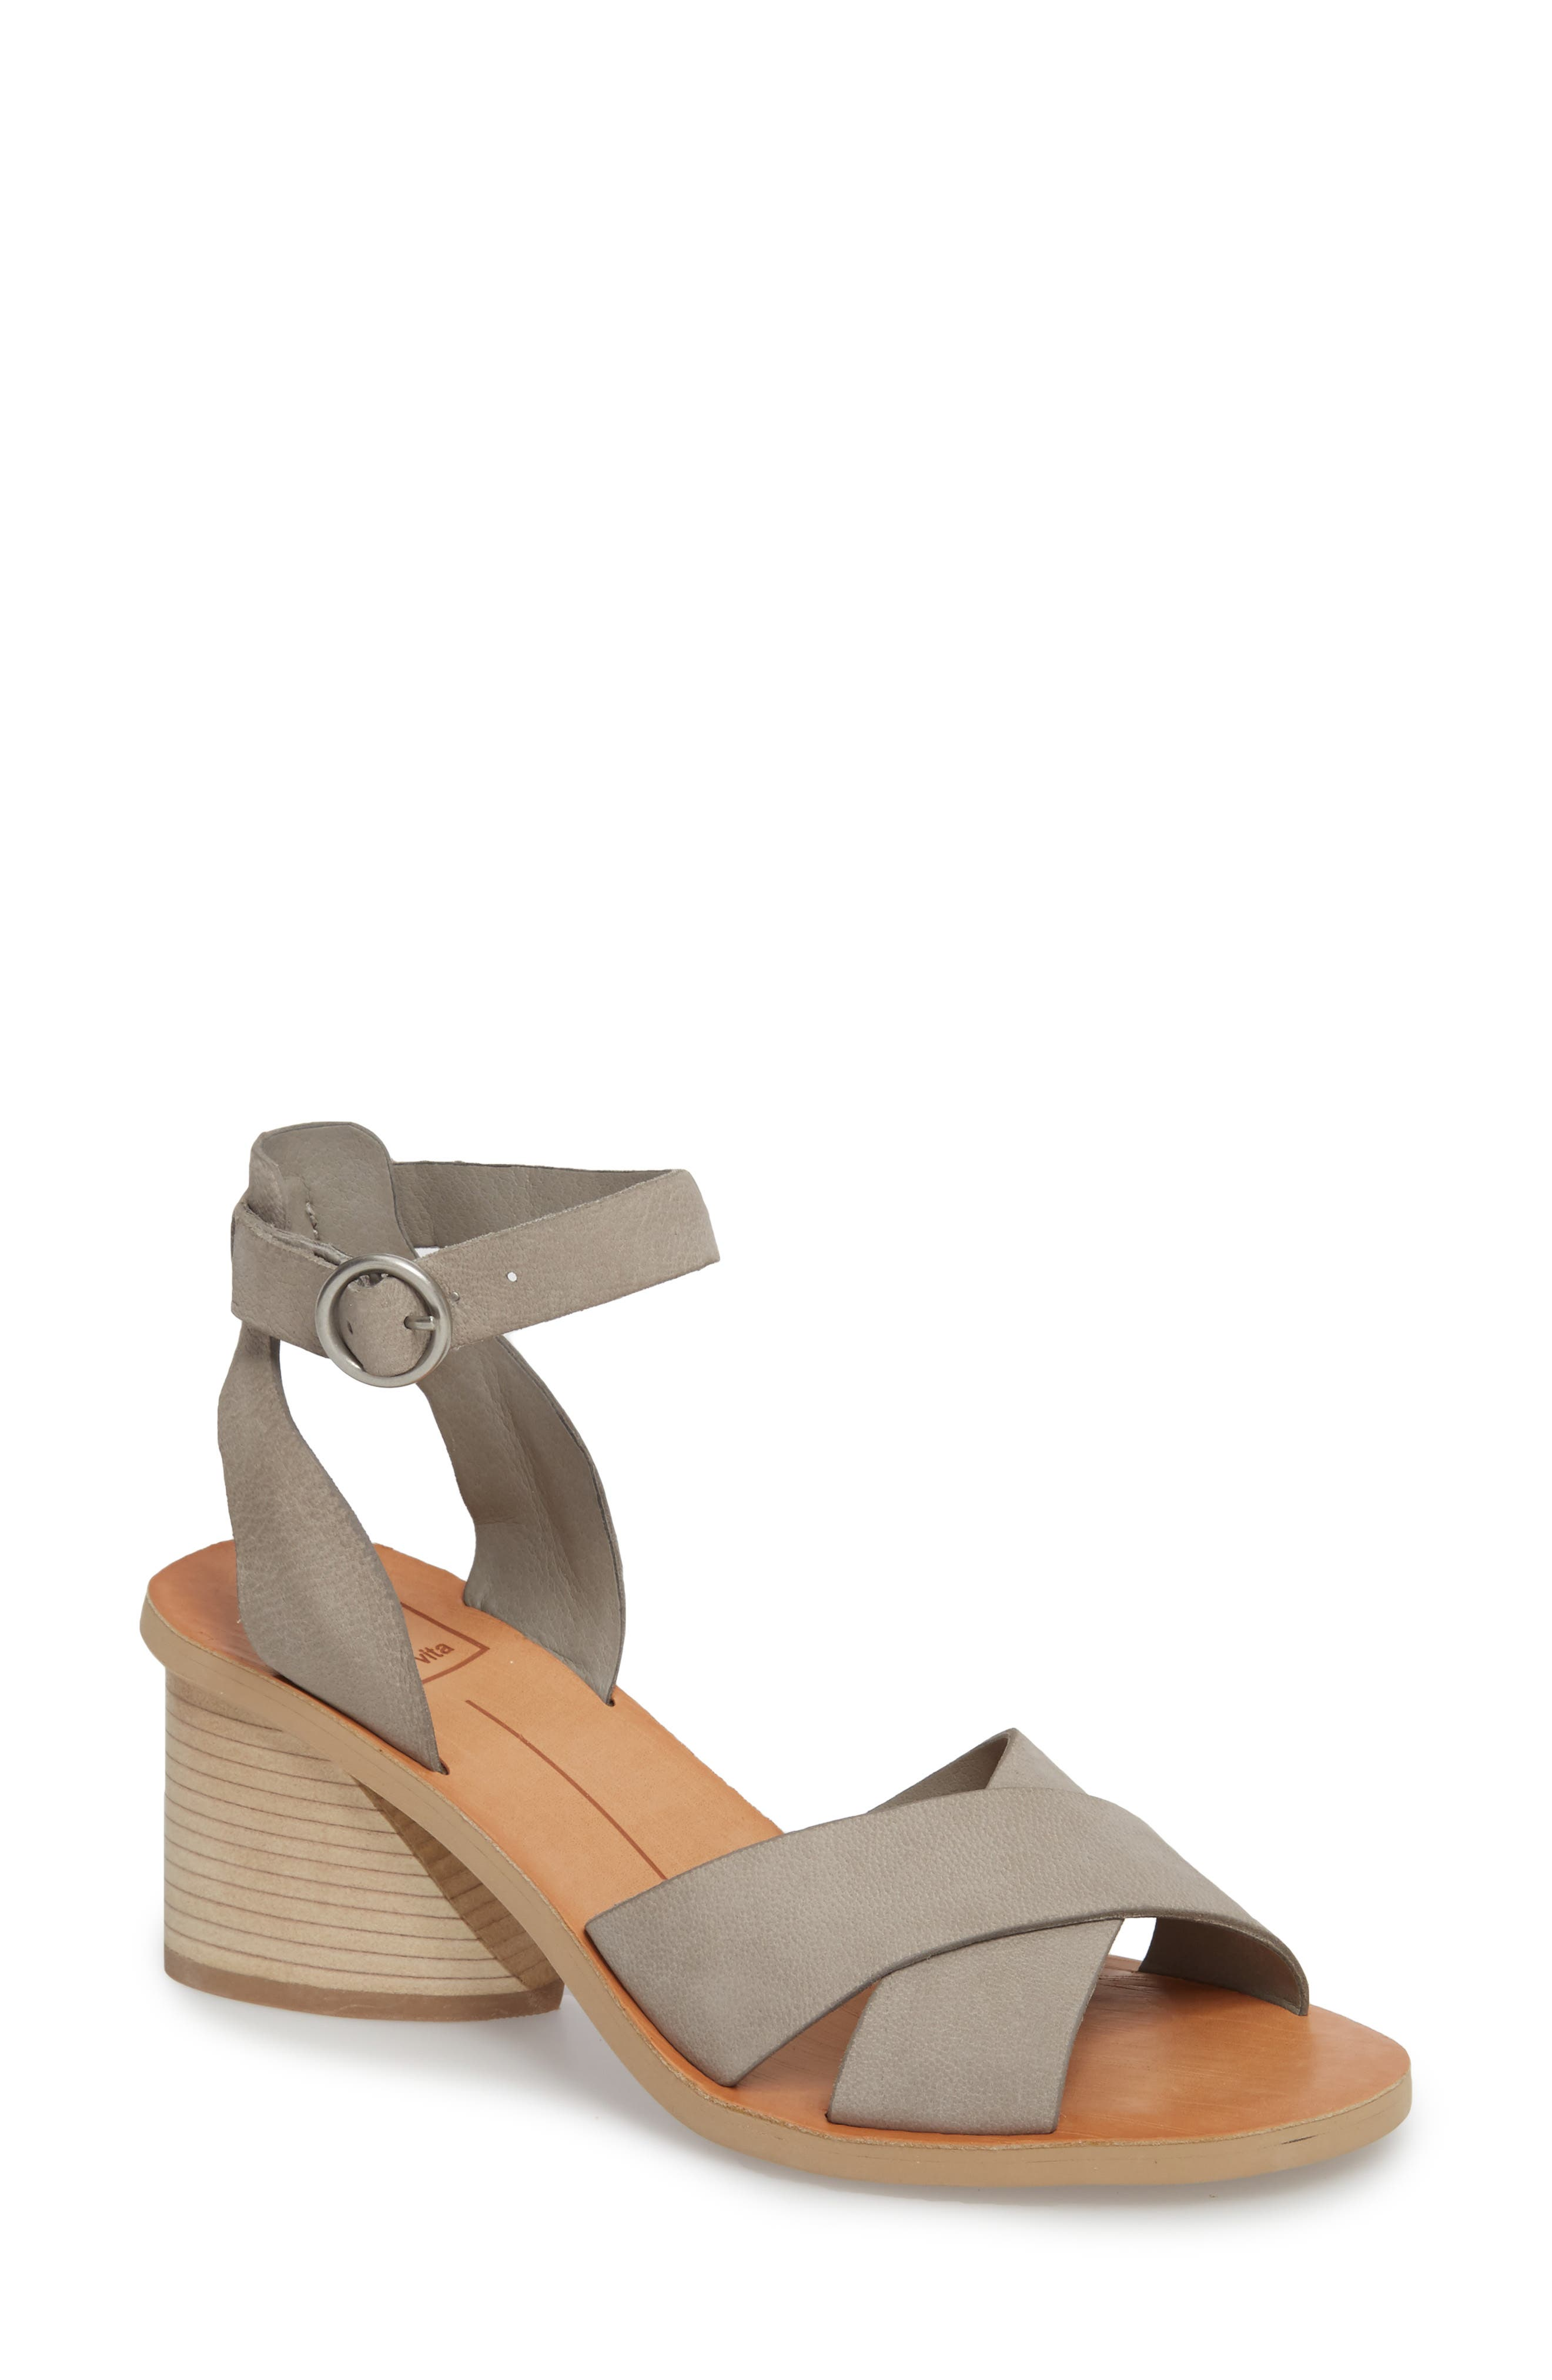 Roman Flared Heel Sandal,                         Main,                         color, 020